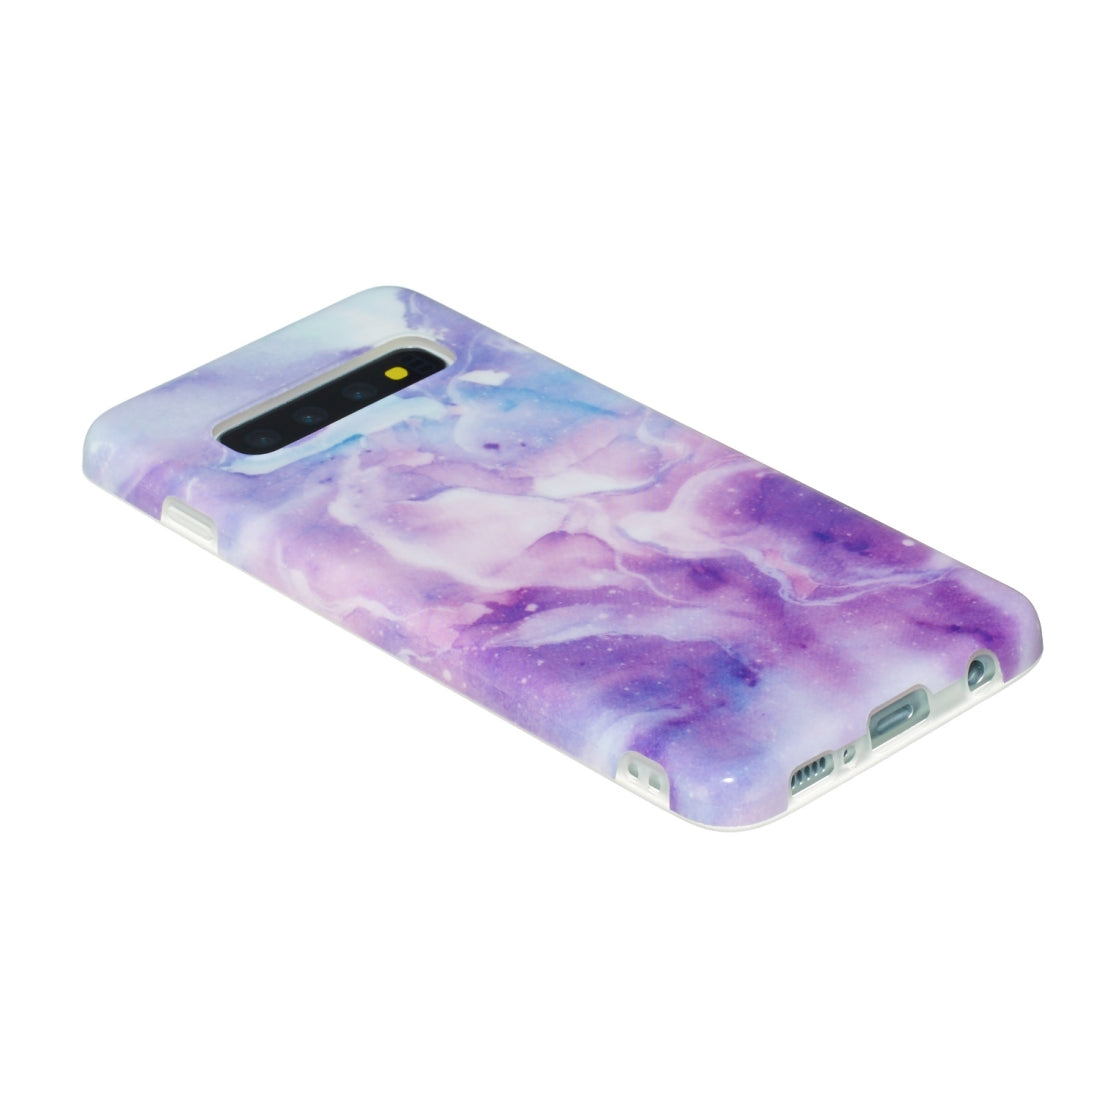 TPU Protective Case For Galaxy S10 Plus(Purple Marble)